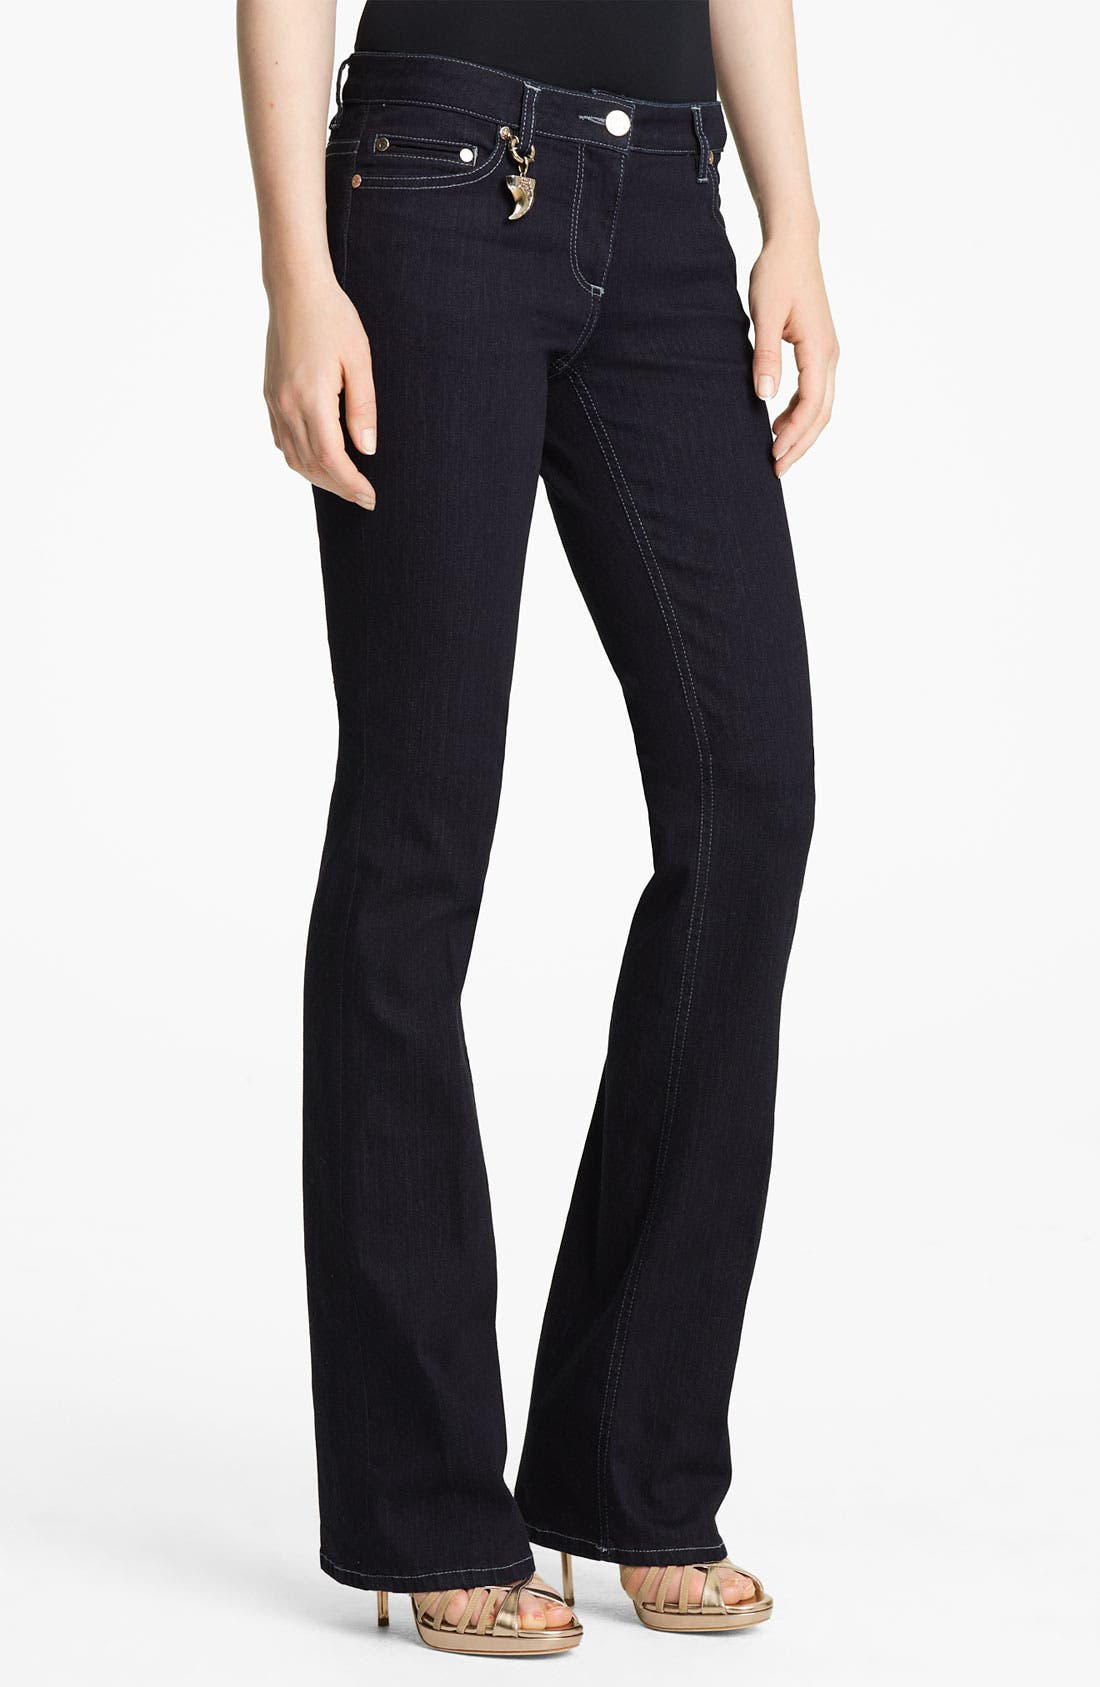 Alternate Image 1 Selected - Roberto Cavalli Bootcut Stretch Jeans